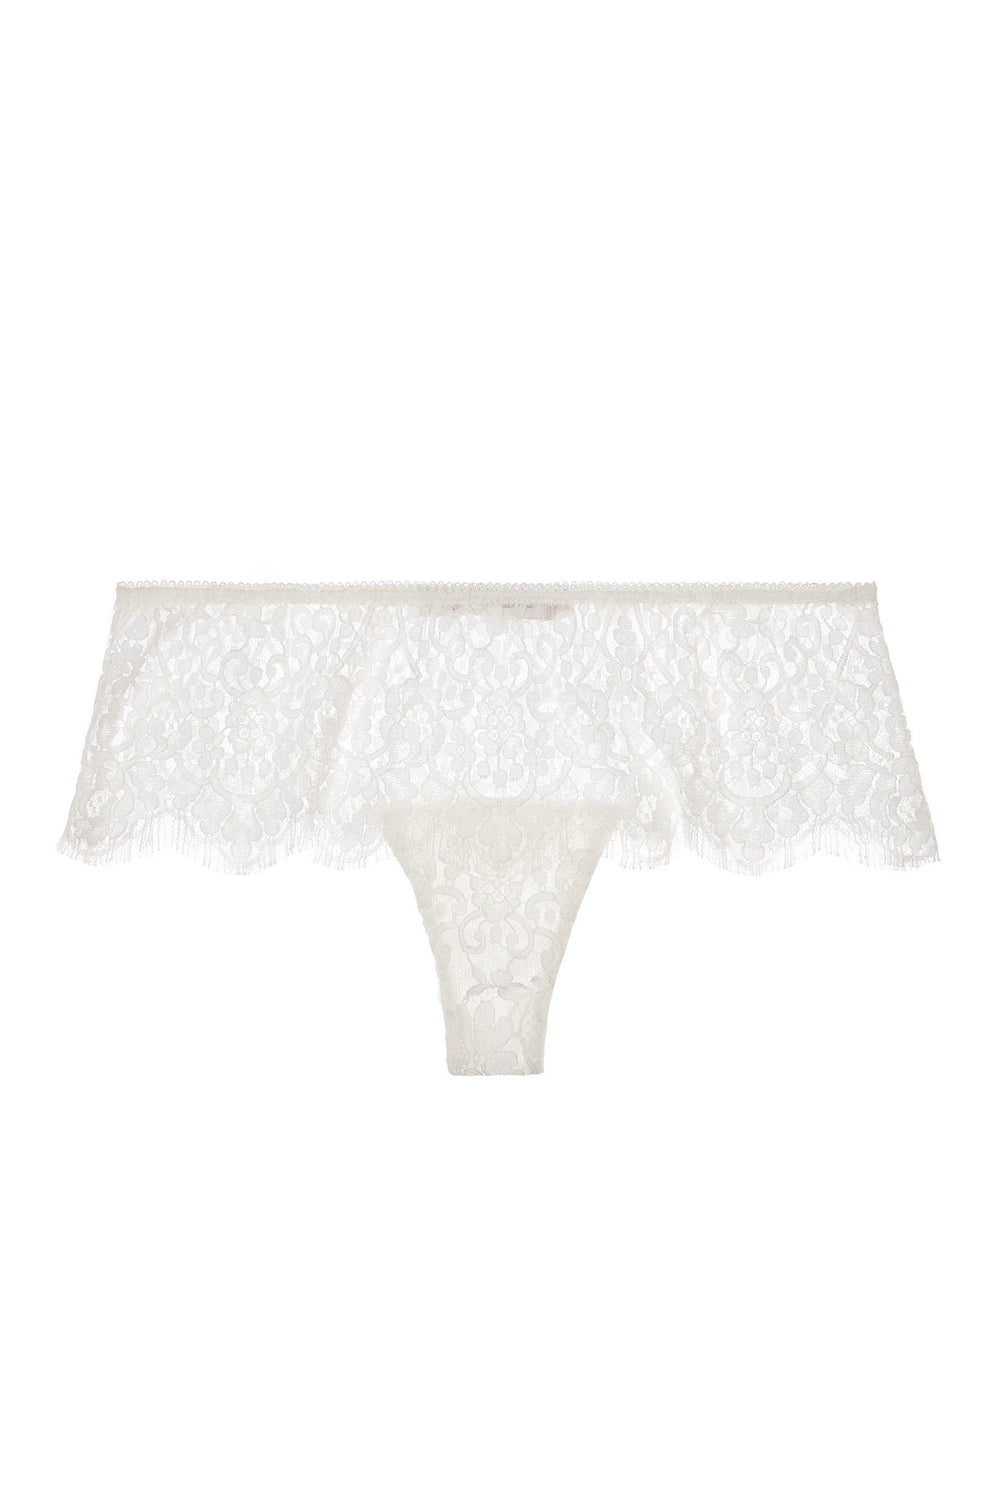 Jen French lace cheeky bikini briefs in Ivory